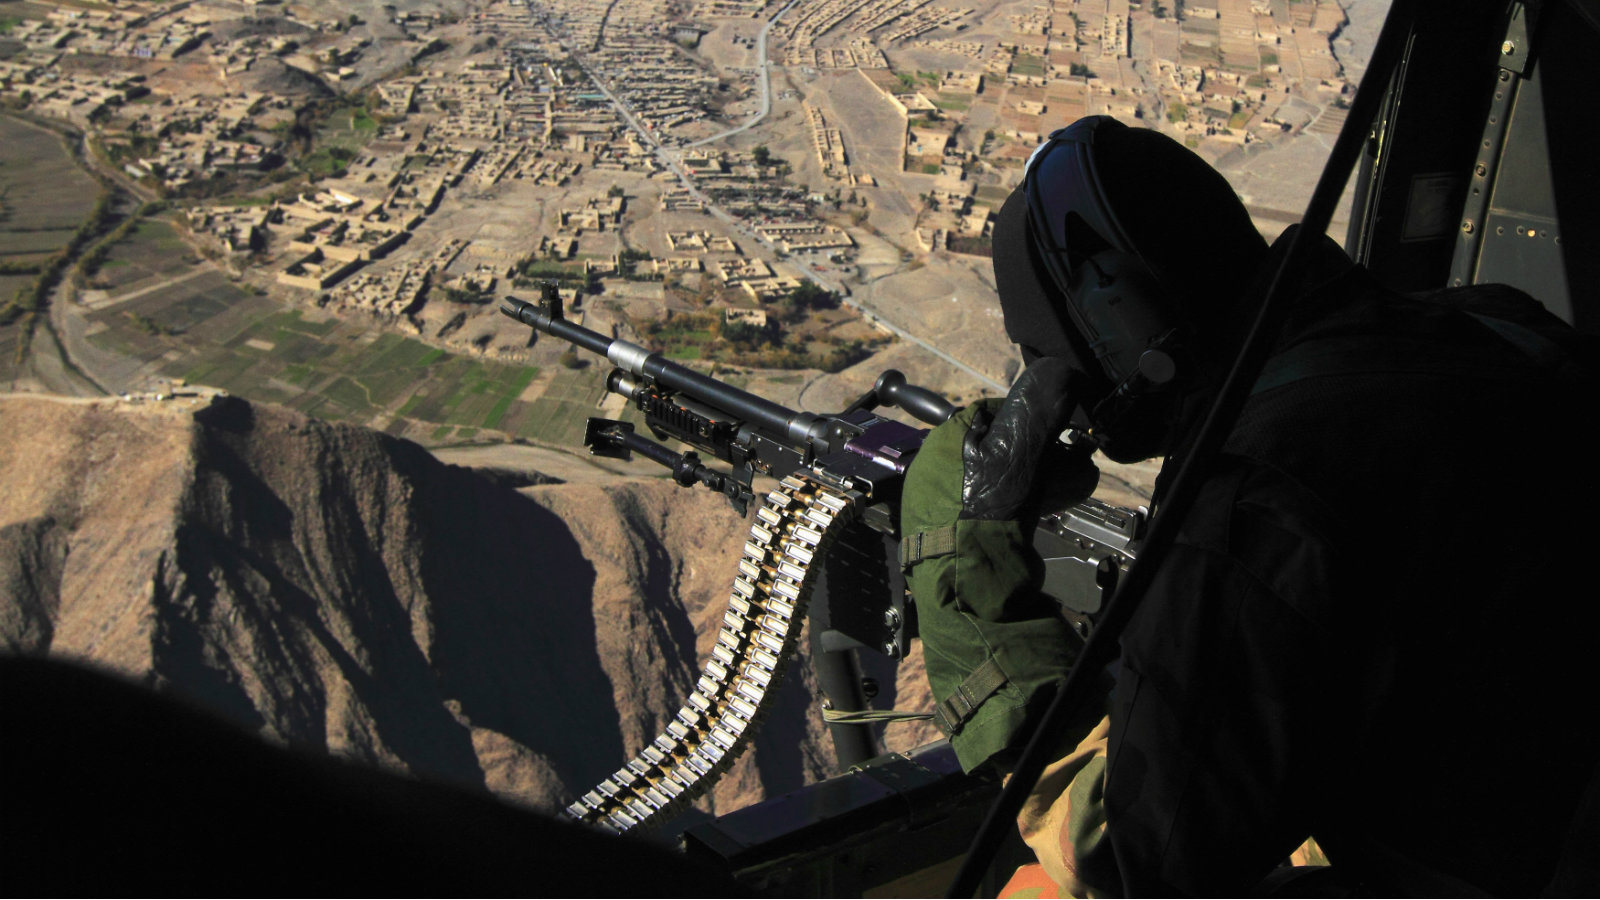 A Pakistani soldier mans a machine gun on a military helicopter.